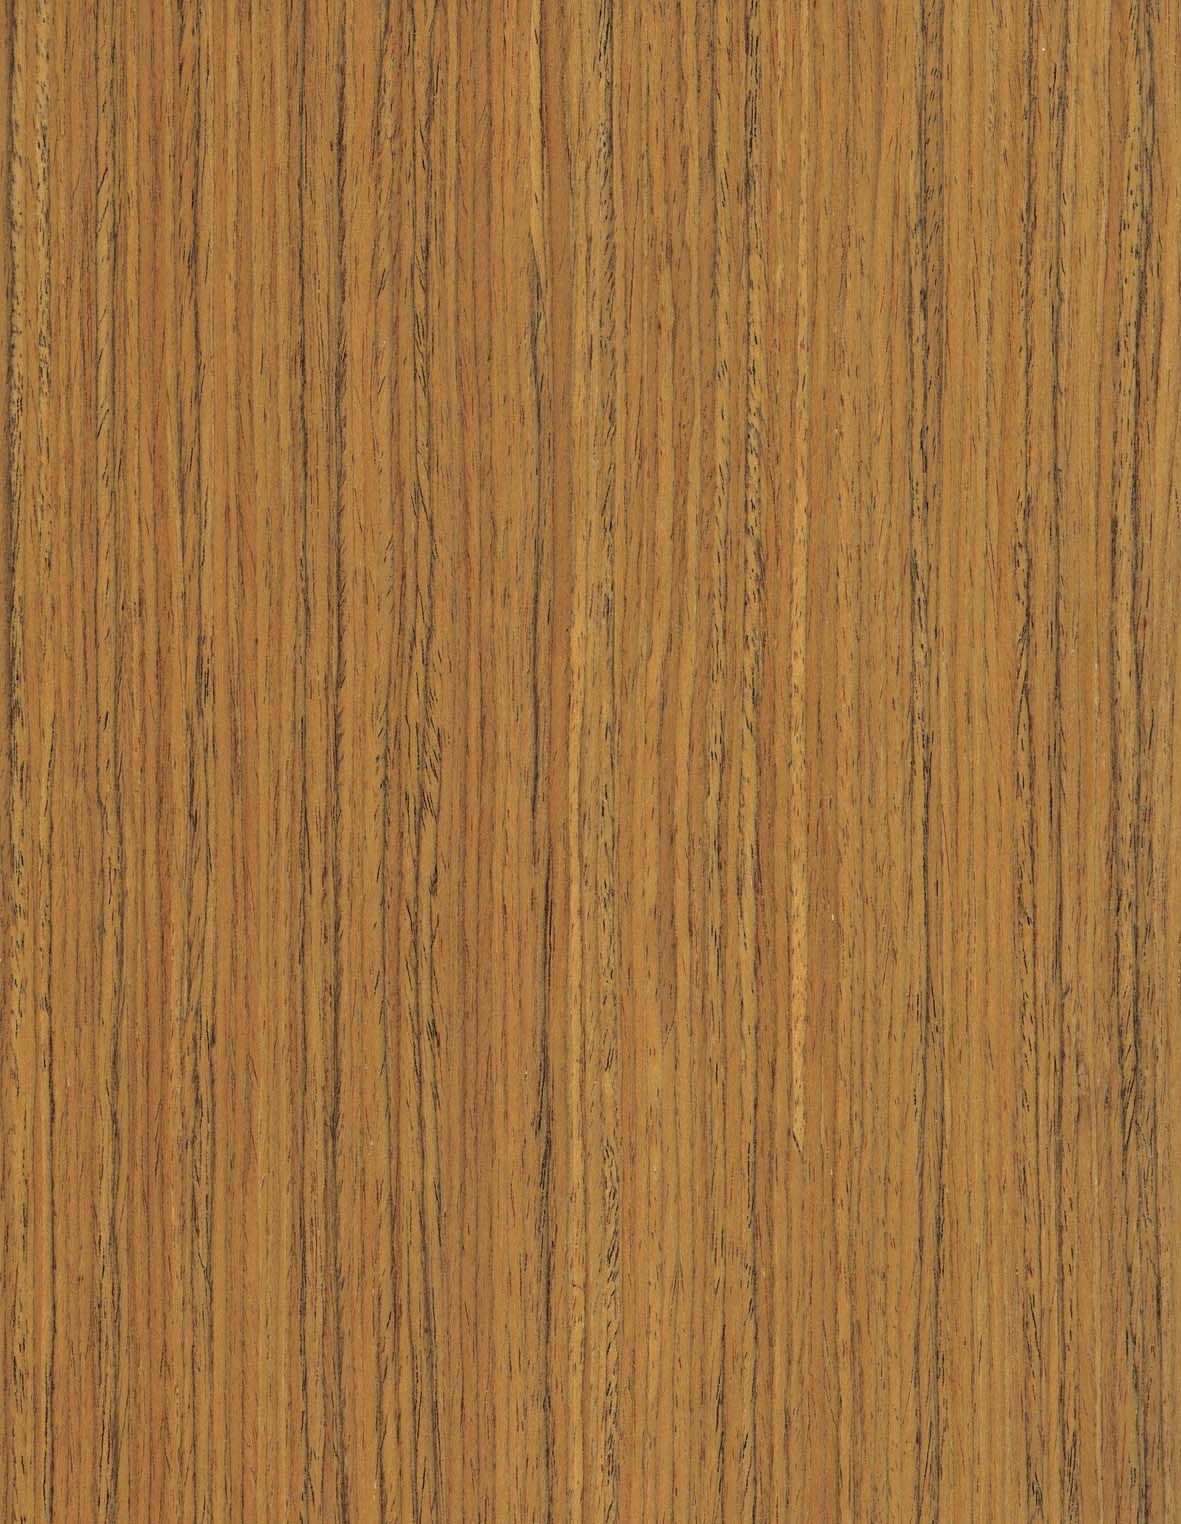 TEAK by Abodian Happy Forest ™ doors and panels - Abodian ...